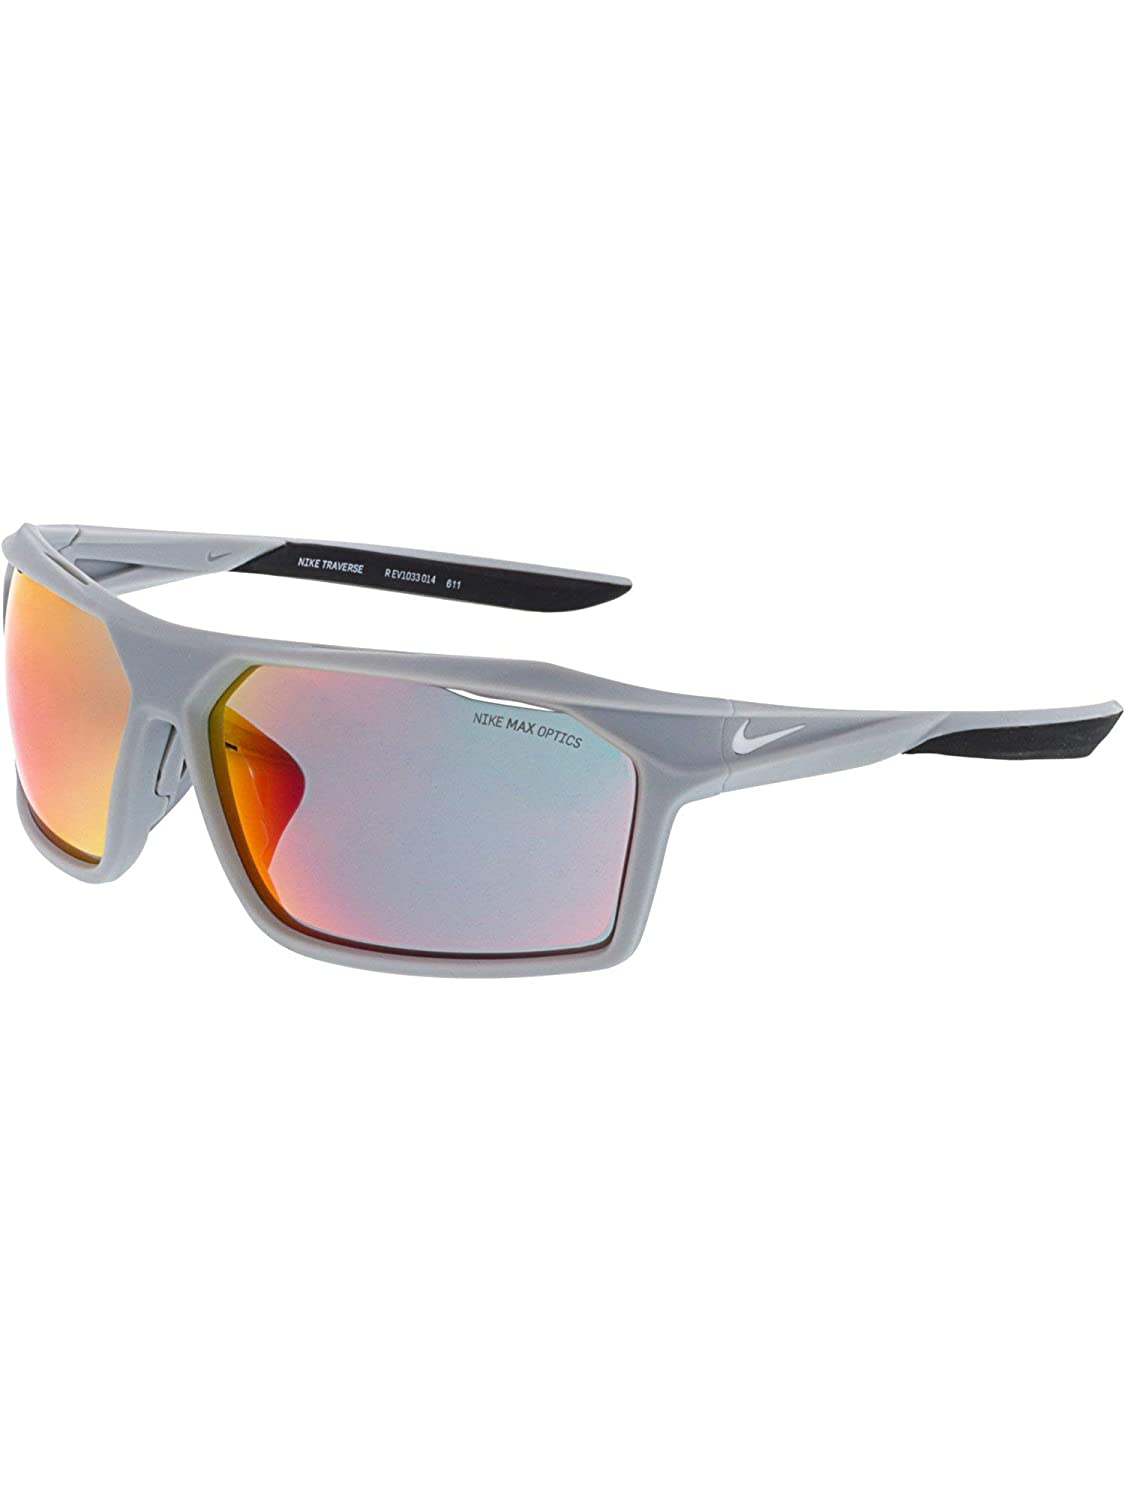 821097a28a Shade Men Nike Vision Traverse R Matte Wolf Gray  Amazon.co.uk  Sports    Outdoors